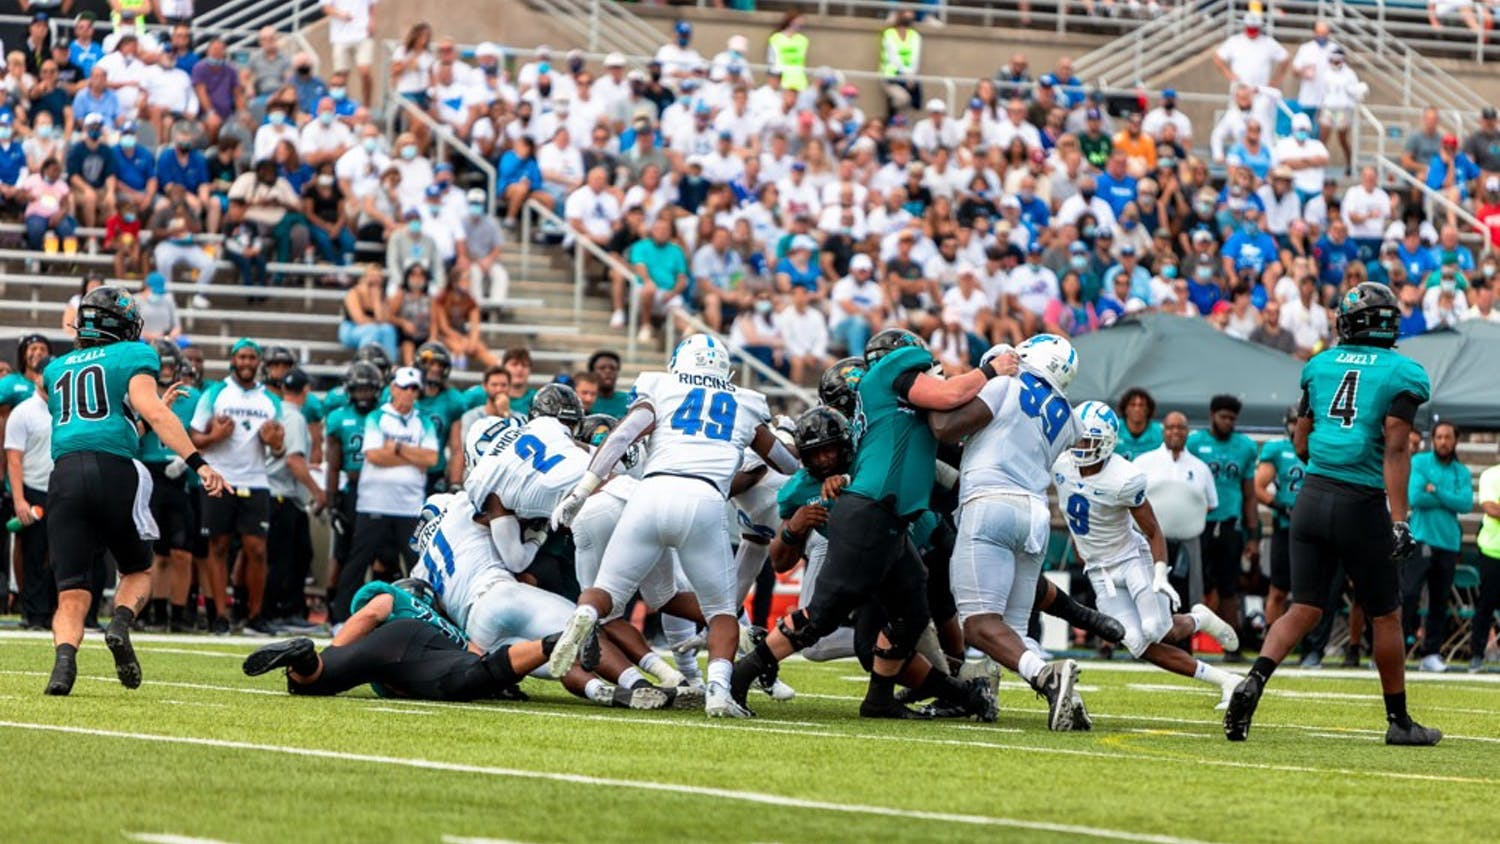 Despite a valiant effort against one of the top teams in the nation, Coastal Carolina's highly efficient multiple offense scheme proved to be too much for the Bulls on Saturday.